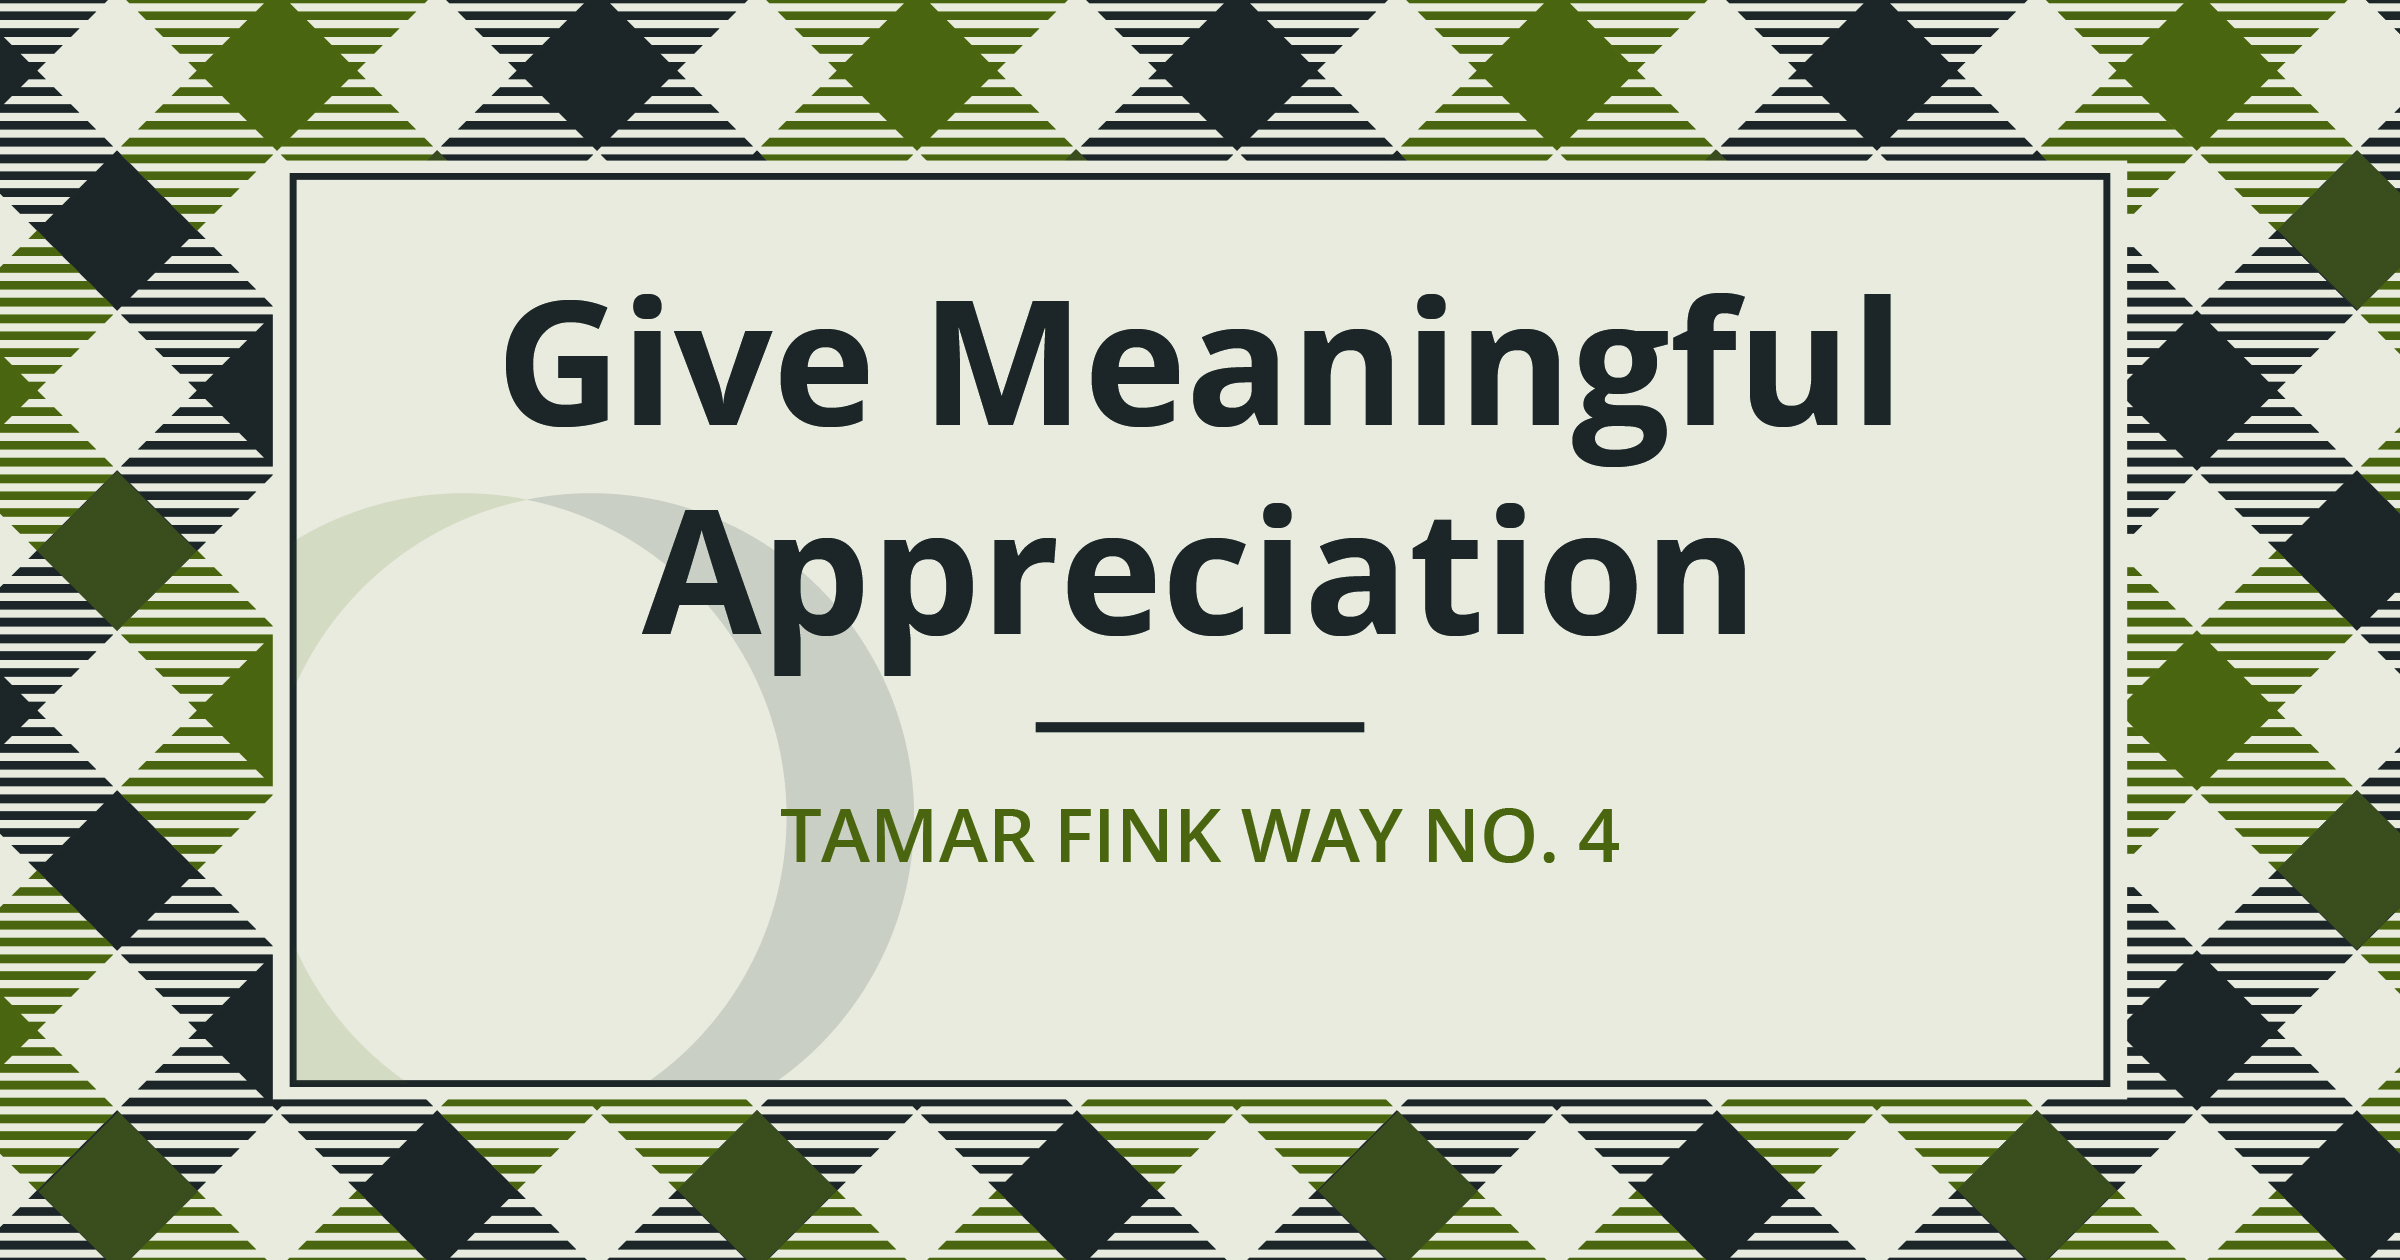 The Tamar Fink Way – #4